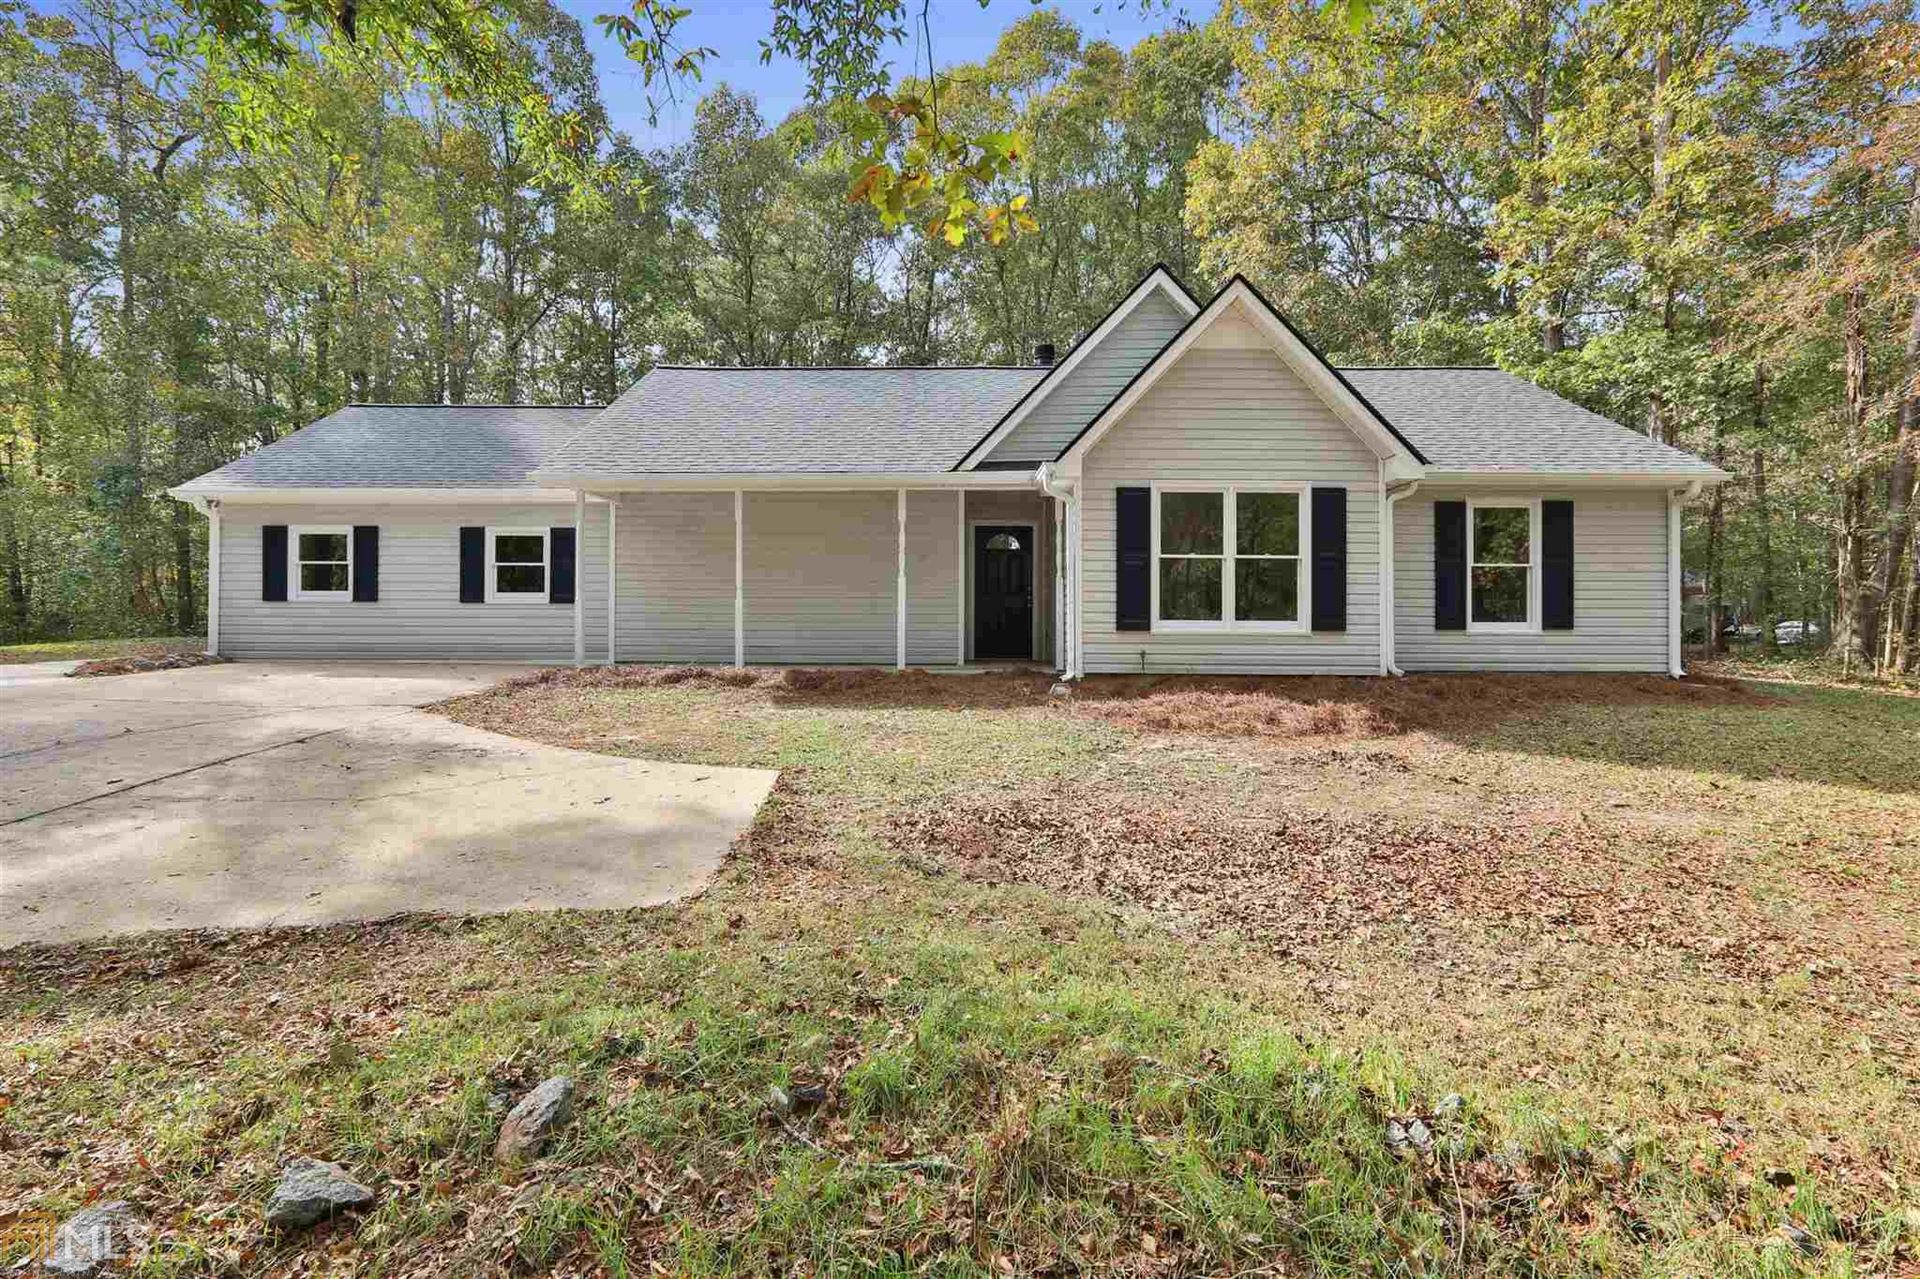 115 Covey Trl, Newnan, GA 30265 - MLS#: 8885183